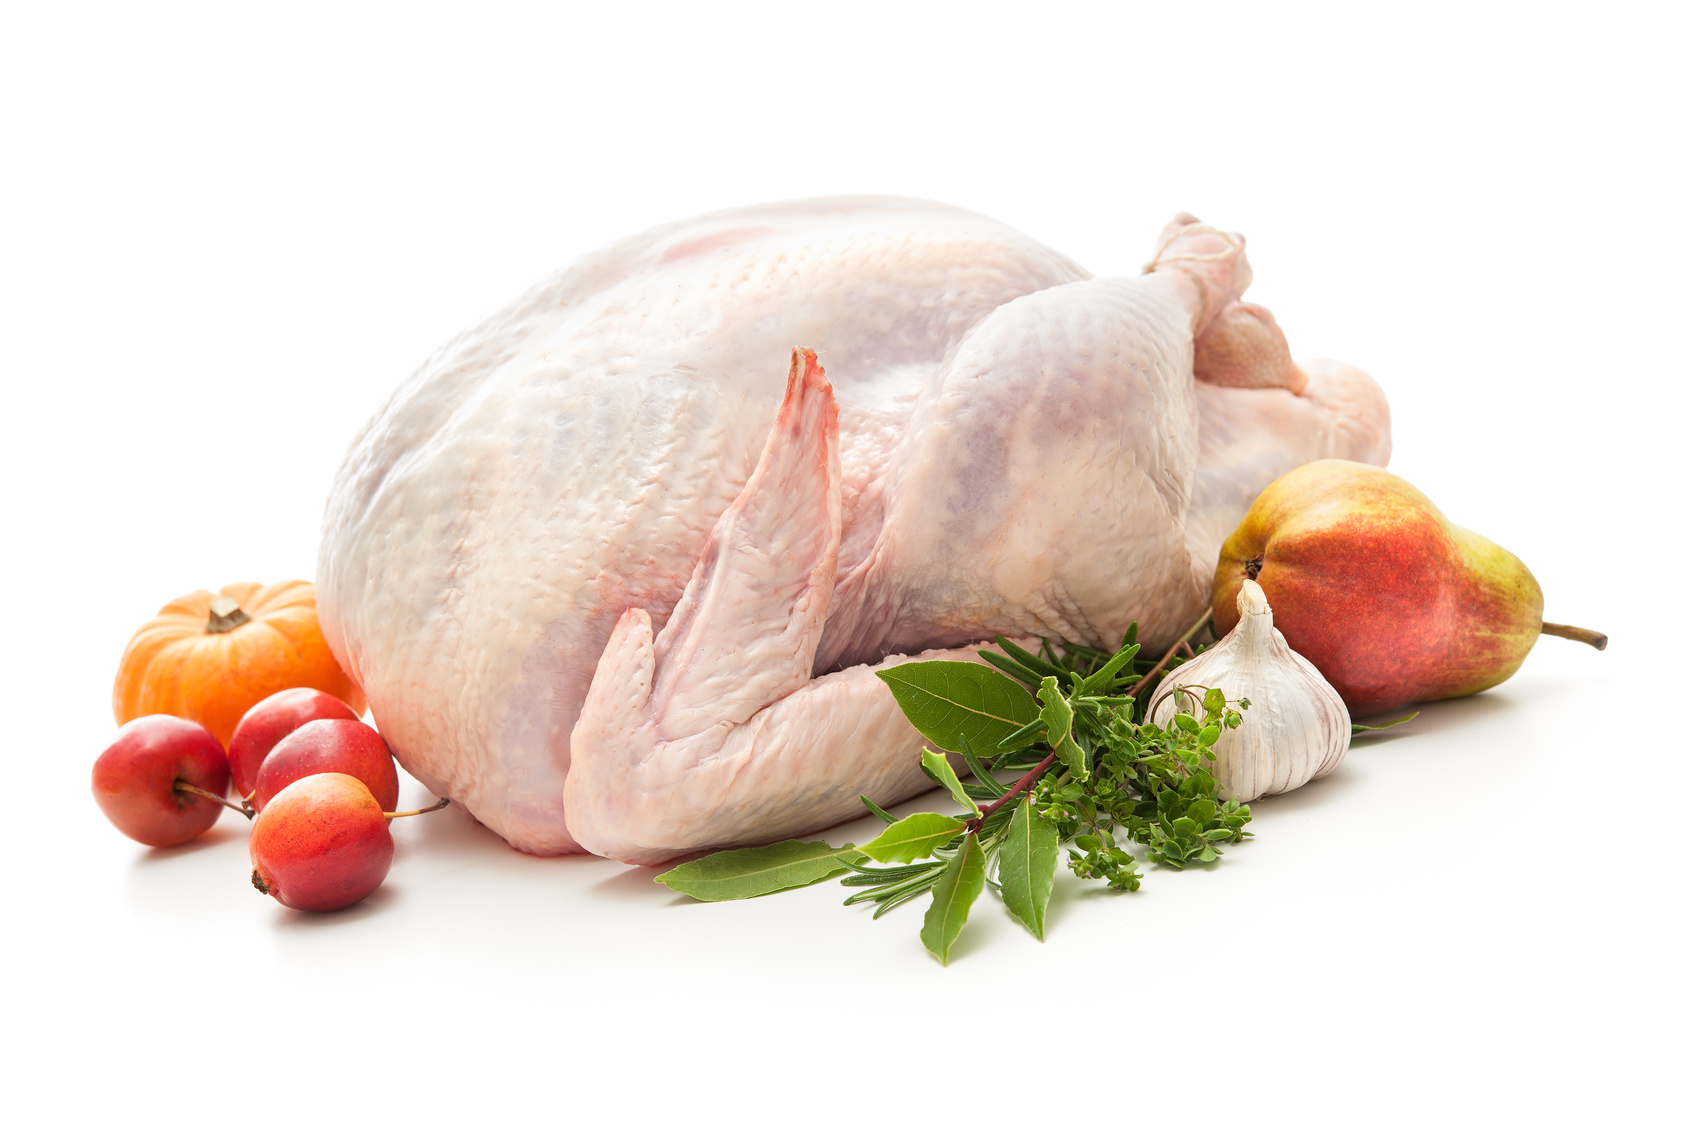 Uncooked turkey with herbs isolated on white background